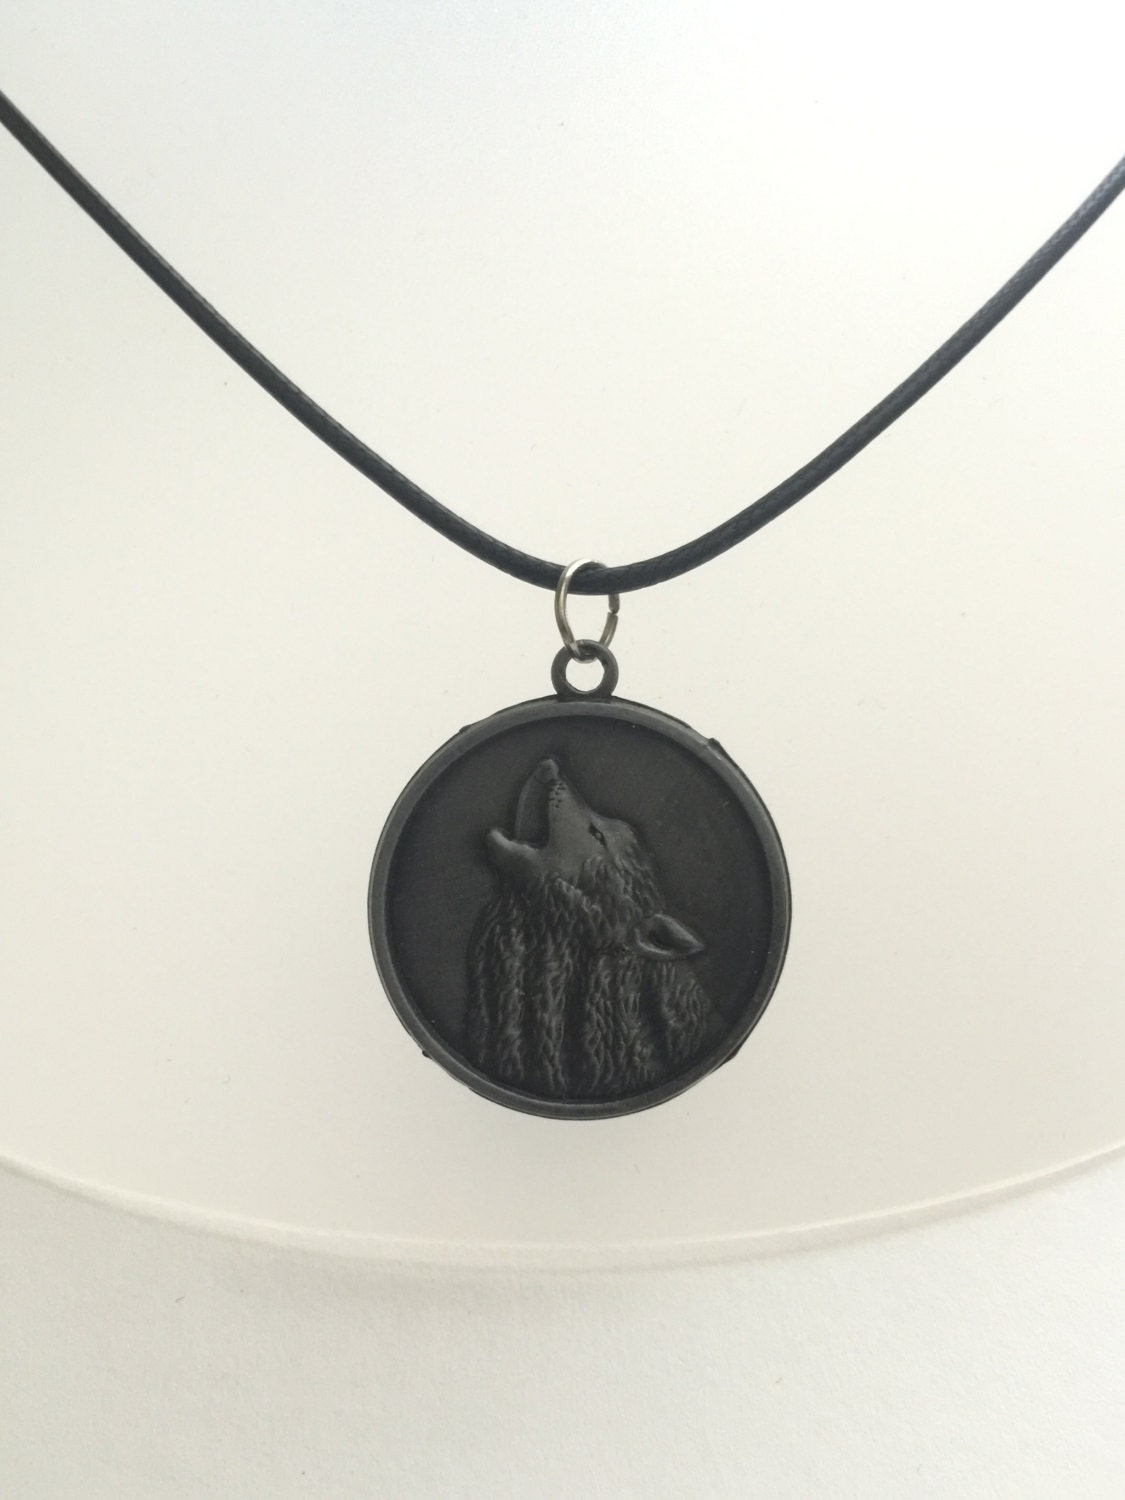 necklace howling wolf and catcher coin pendant pewter